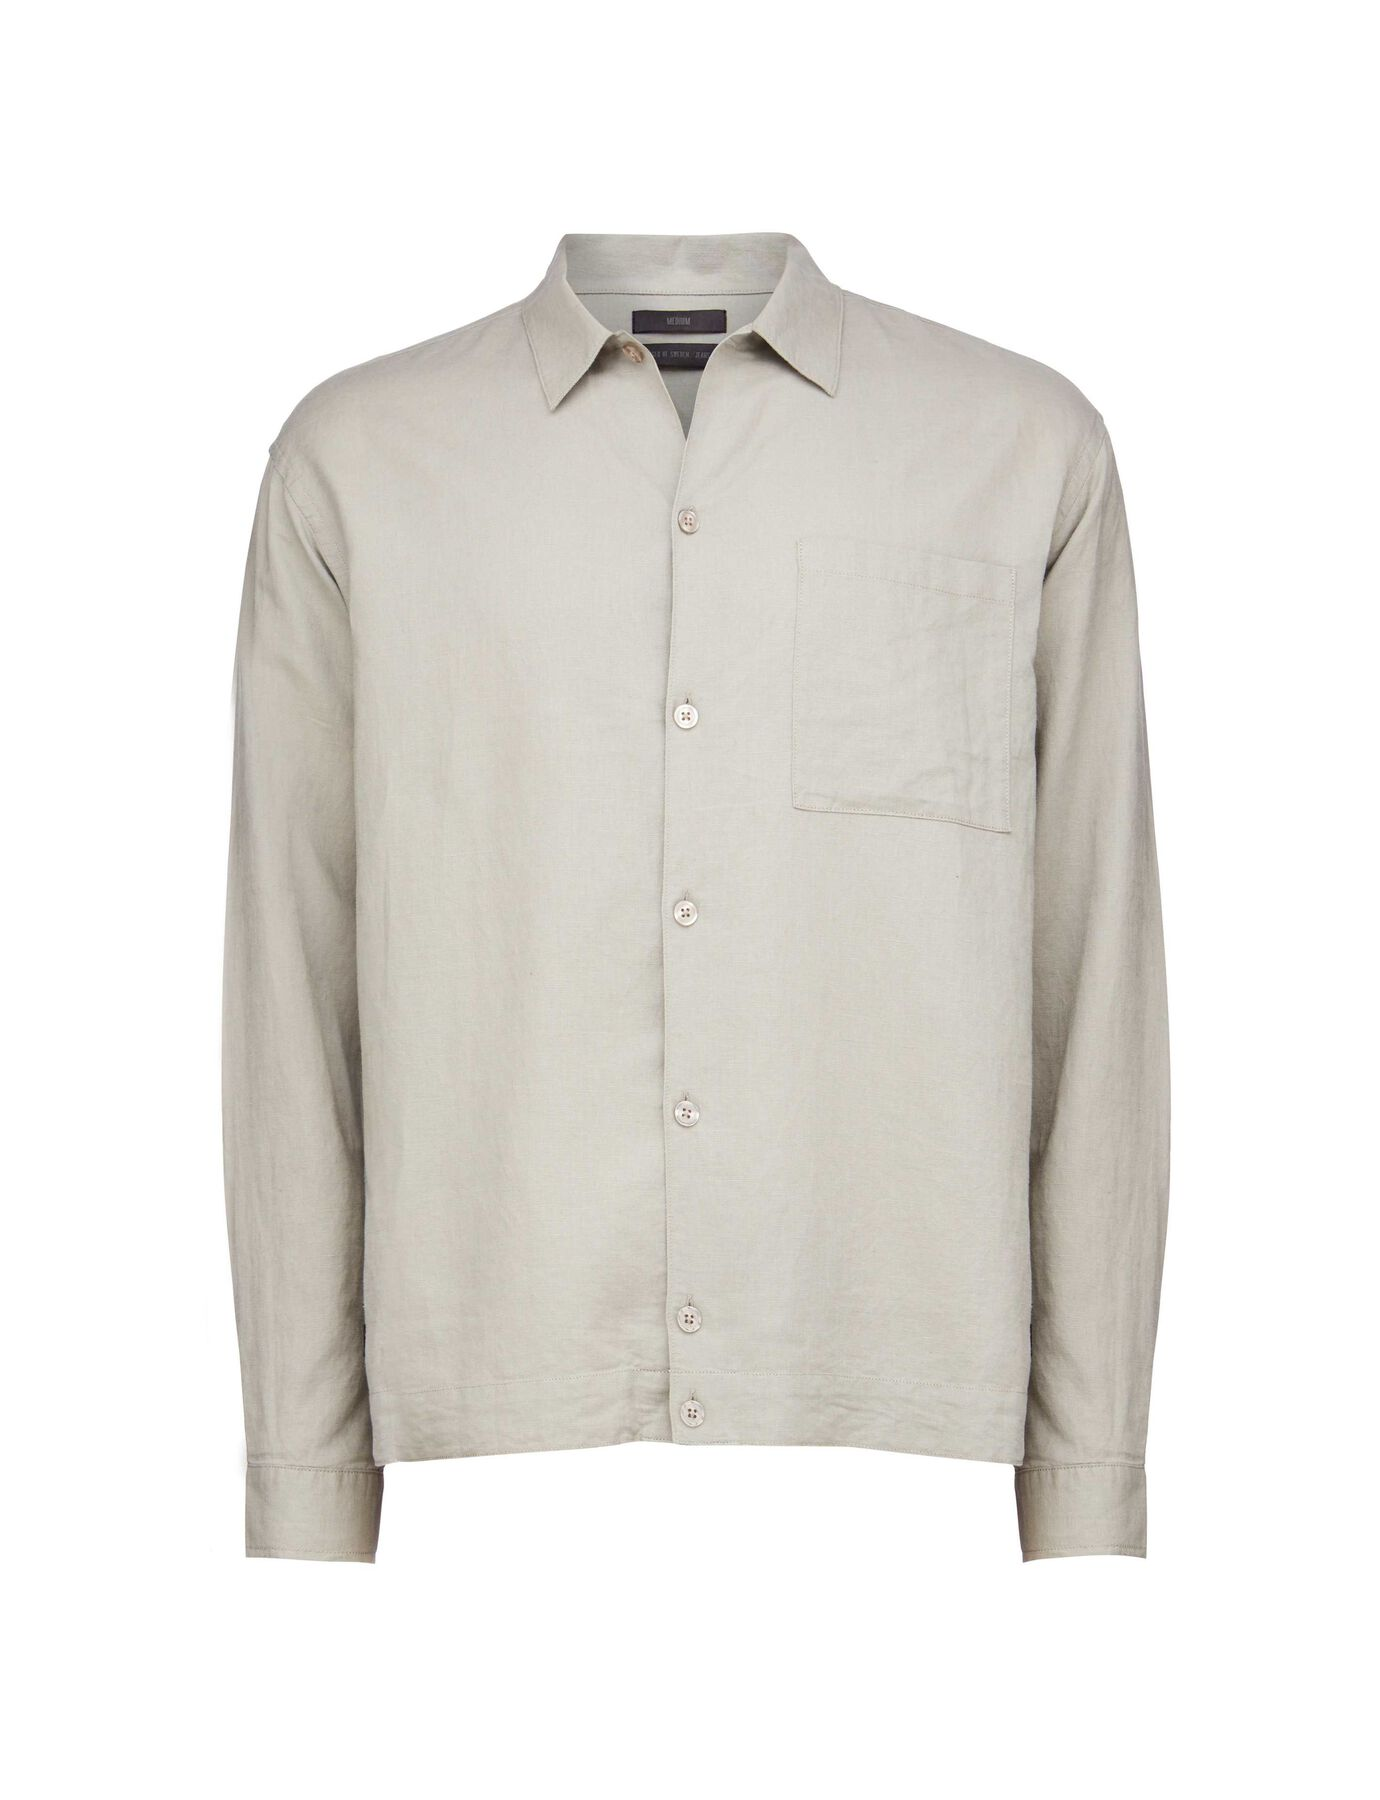 RUSTY SHIRT in Stone from Tiger of Sweden